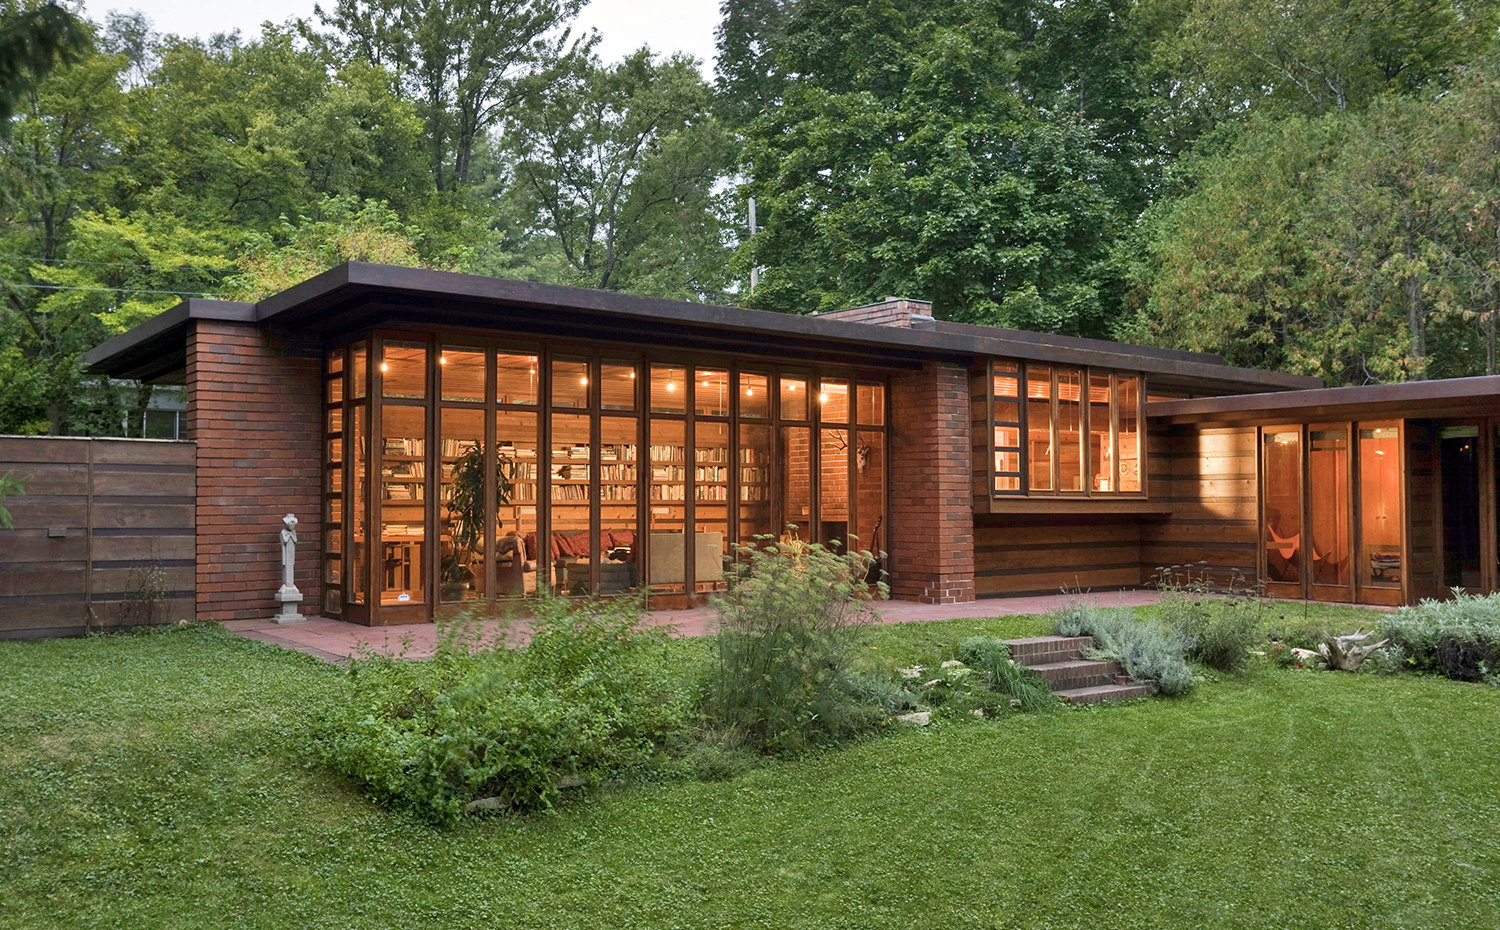 Herbert and Katherine Jacobs house (Madison, Wisconsin, 1936) Frank Lloyd Wright